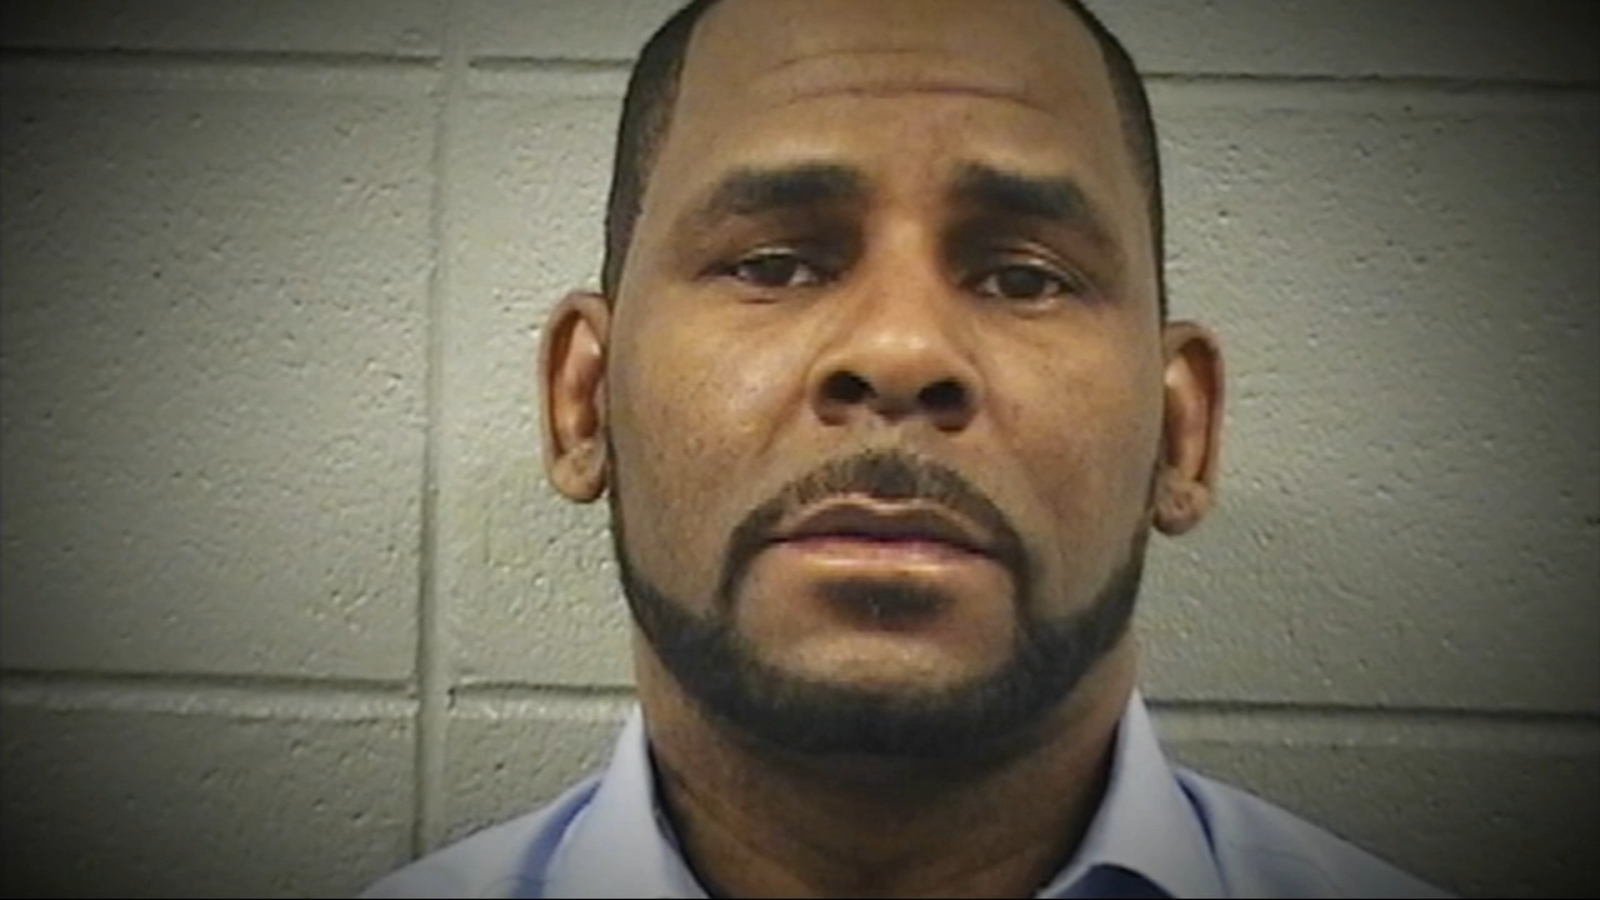 R. Kelly held without bond following Tuesday's arraignment on federal sex crime charges